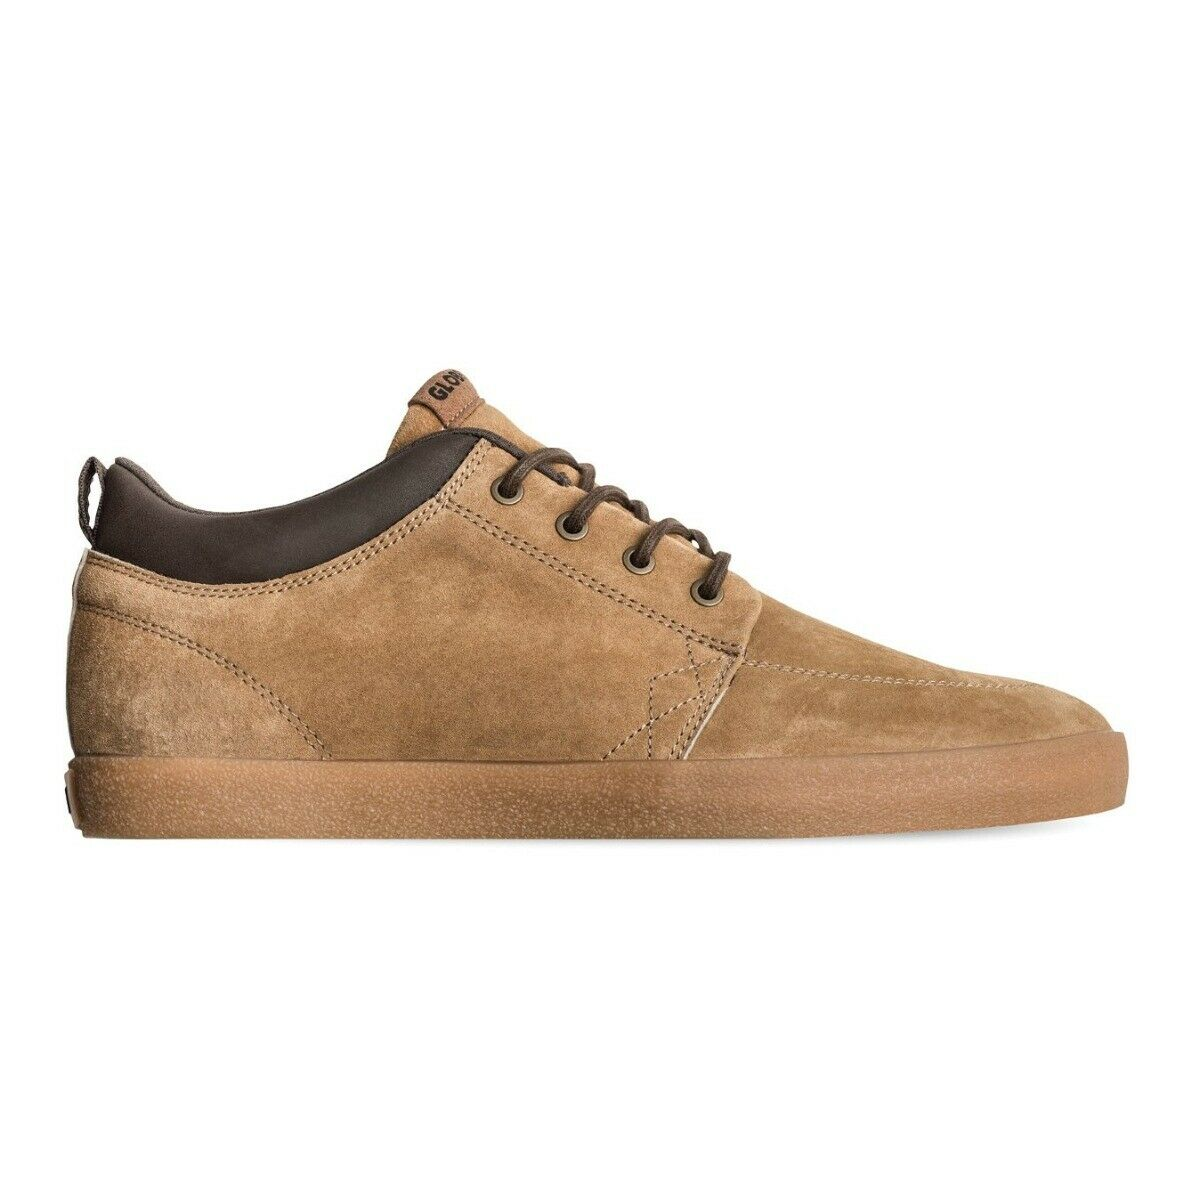 Globe NEW Men's GS Chukka shoes Dark Tan Crepe BNWT